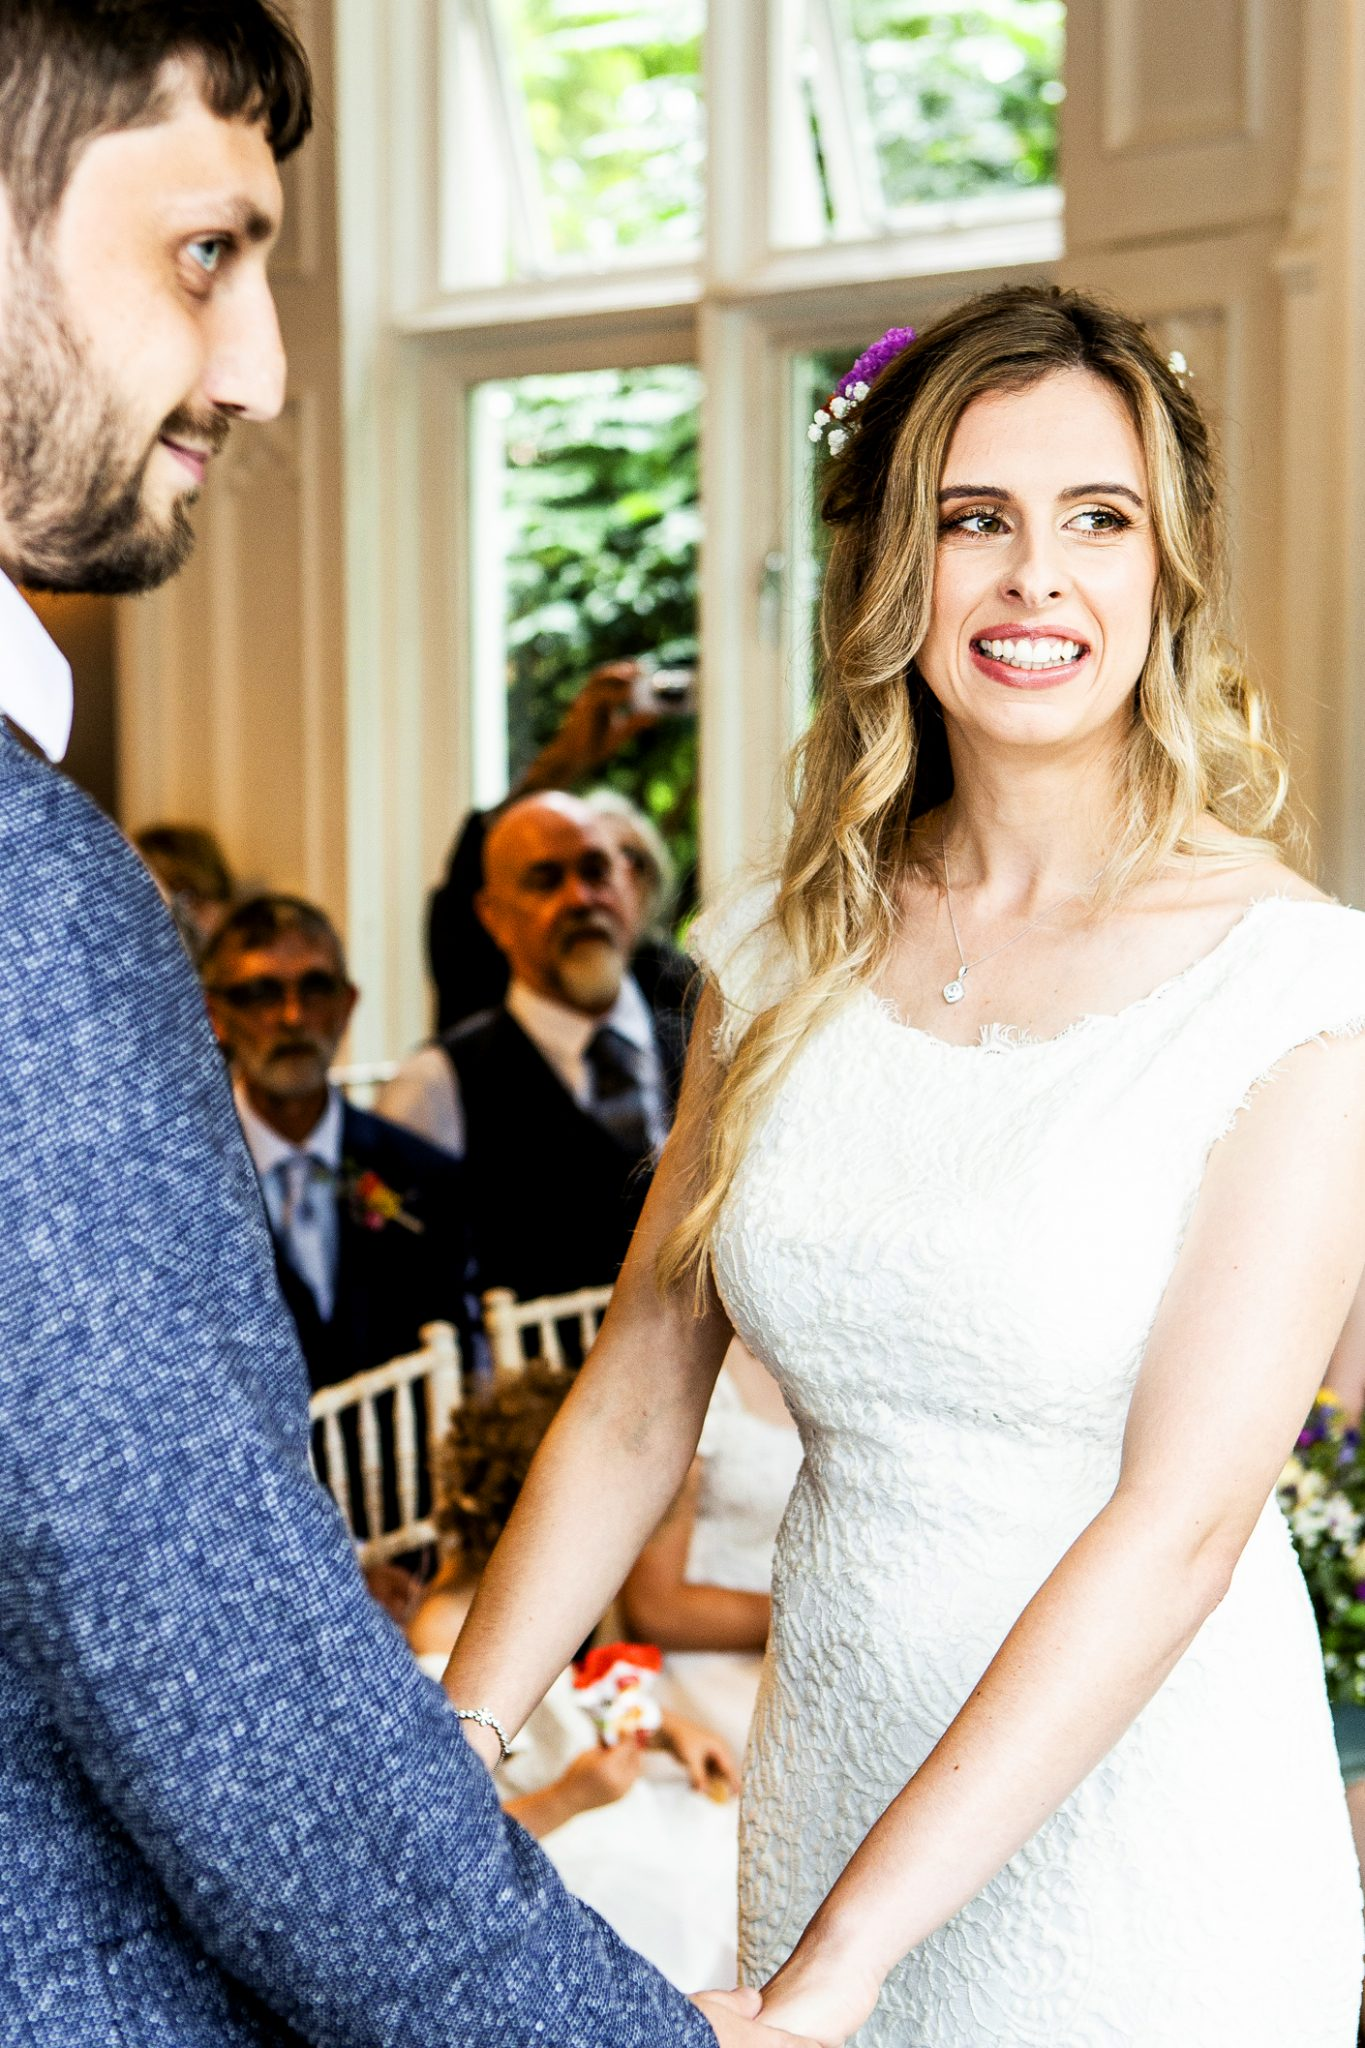 the-bride-and-groom-at-the-wedding-ceremony-in-didsbury-manchester